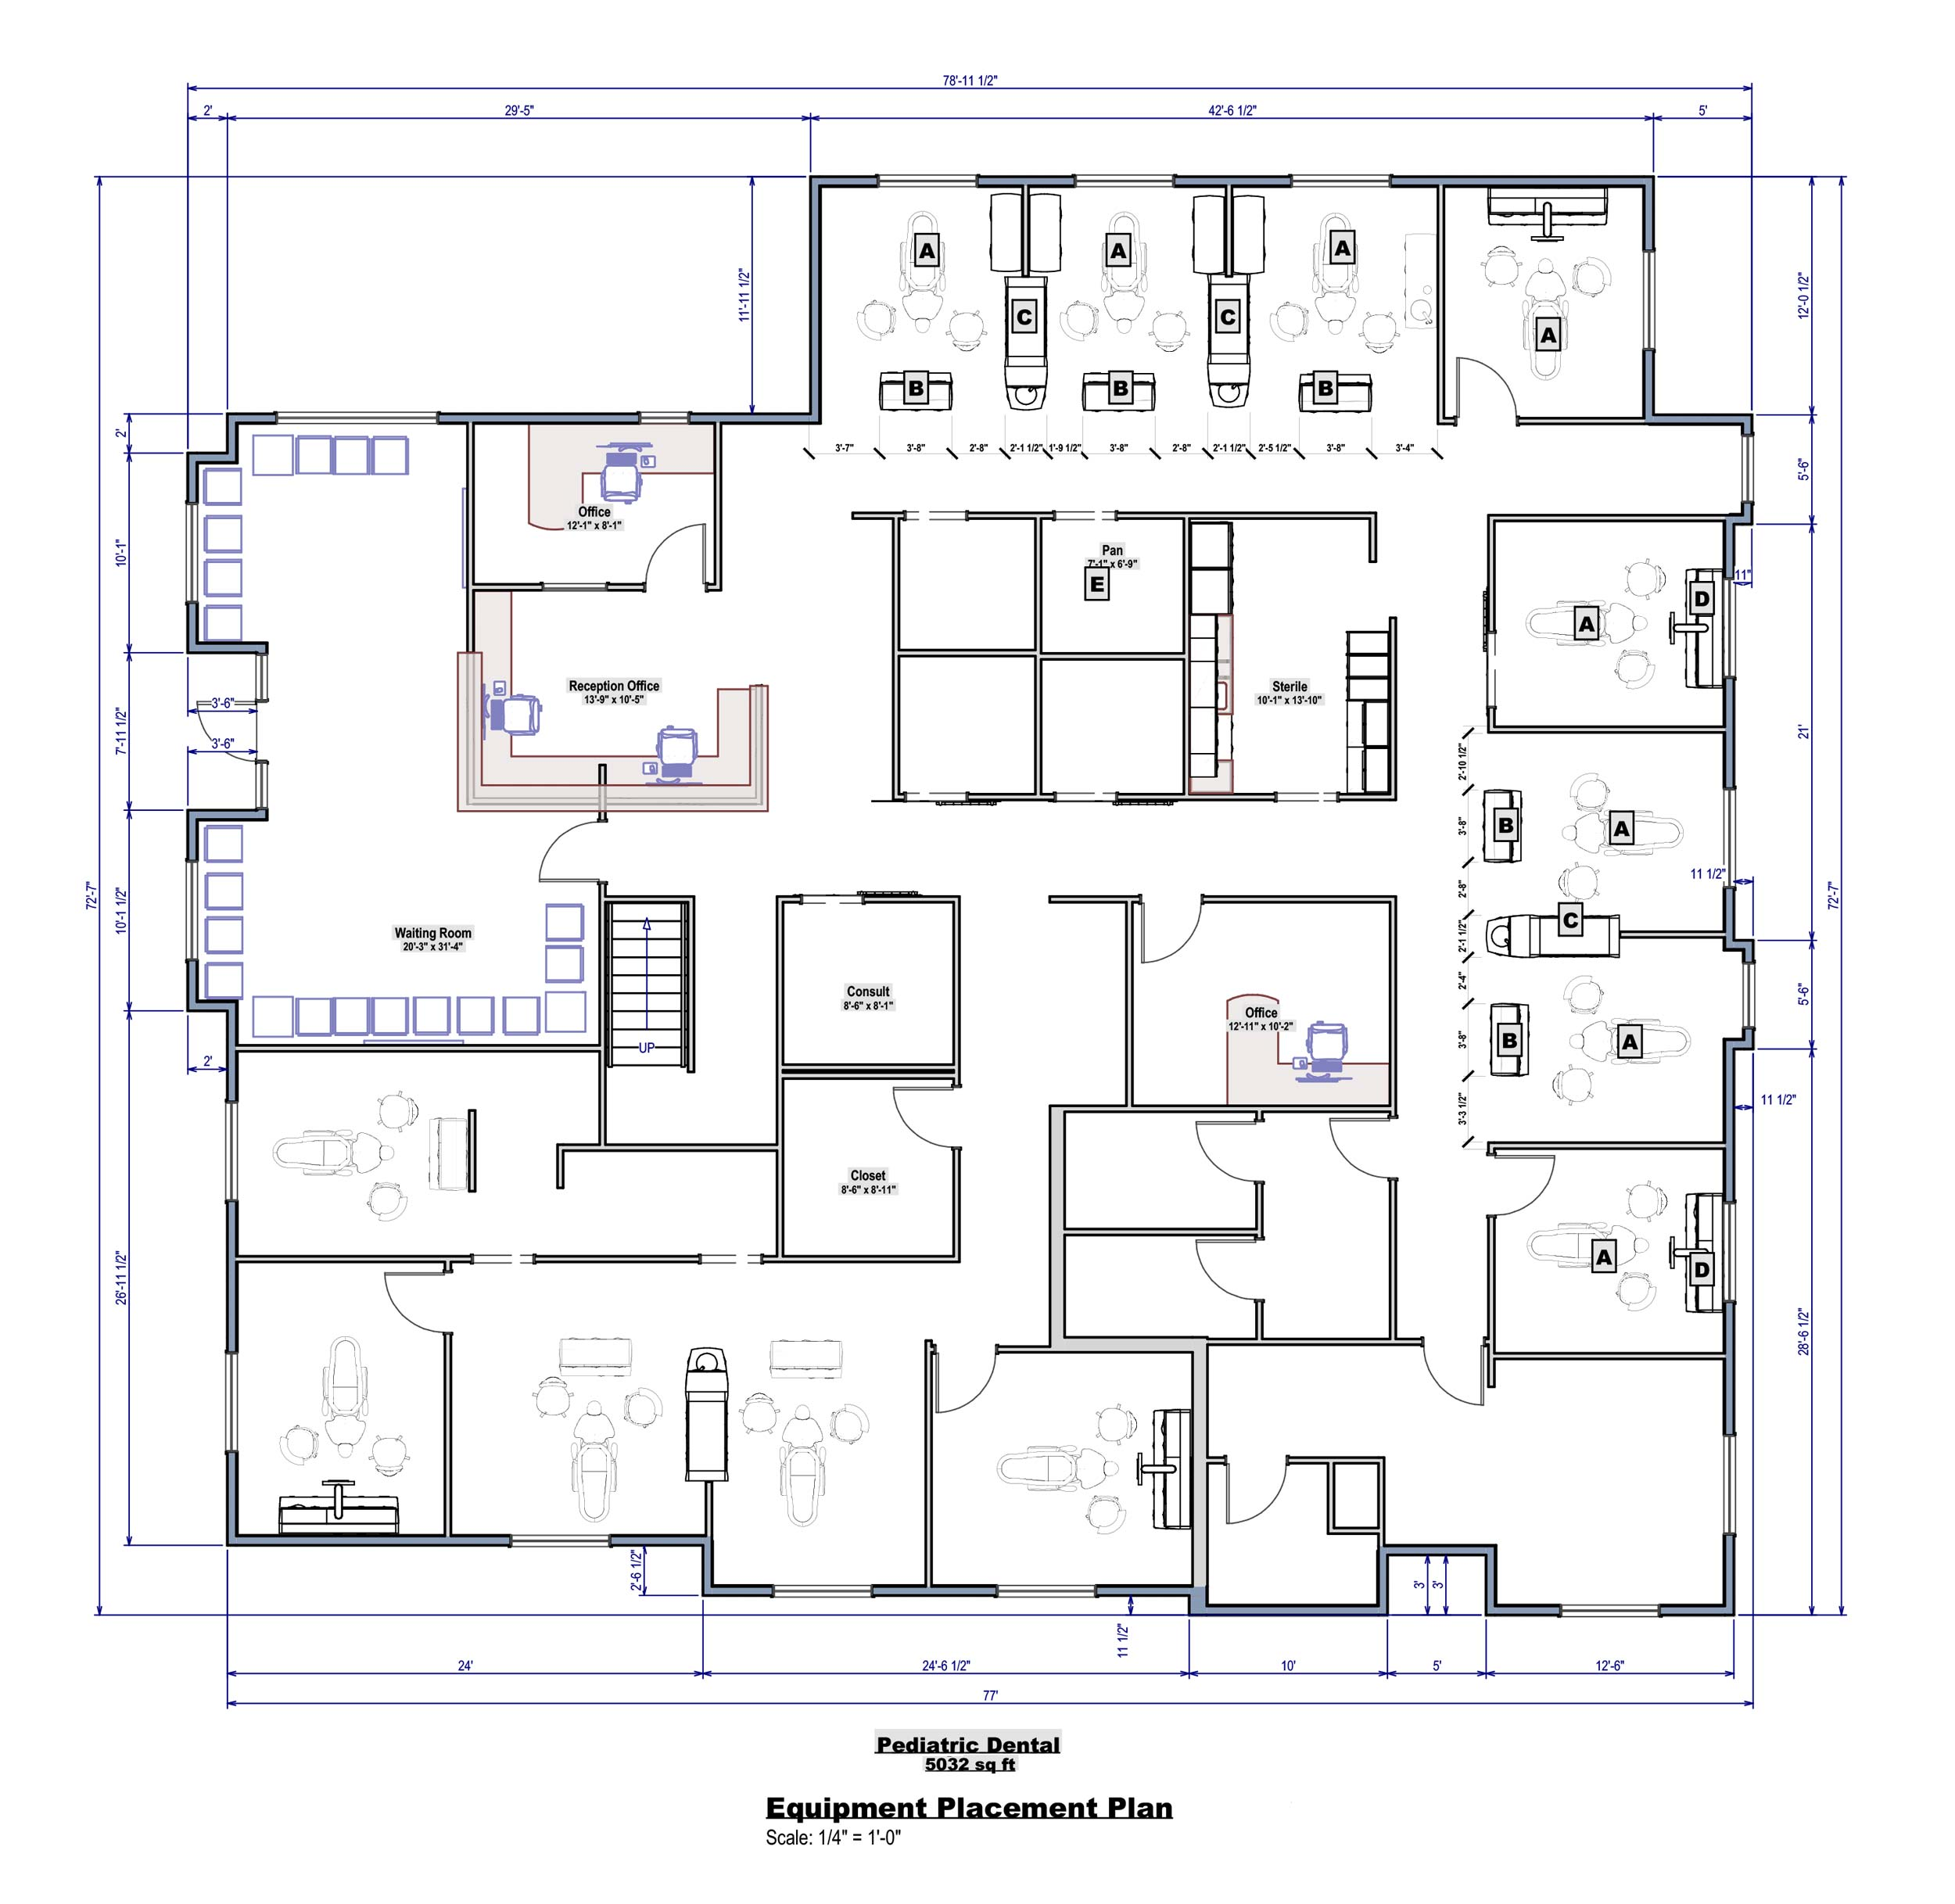 Every new office design starts with a blueprint, a to-scale floorplan drawing indicating space layouts and flow of a new office.